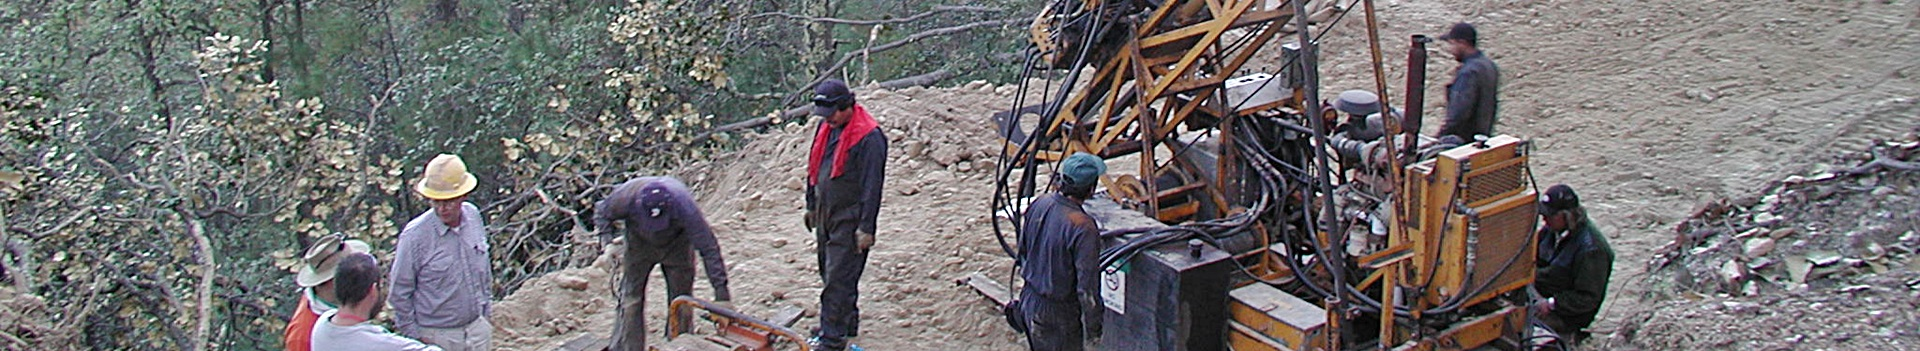 Drilling in Mexico - Pages